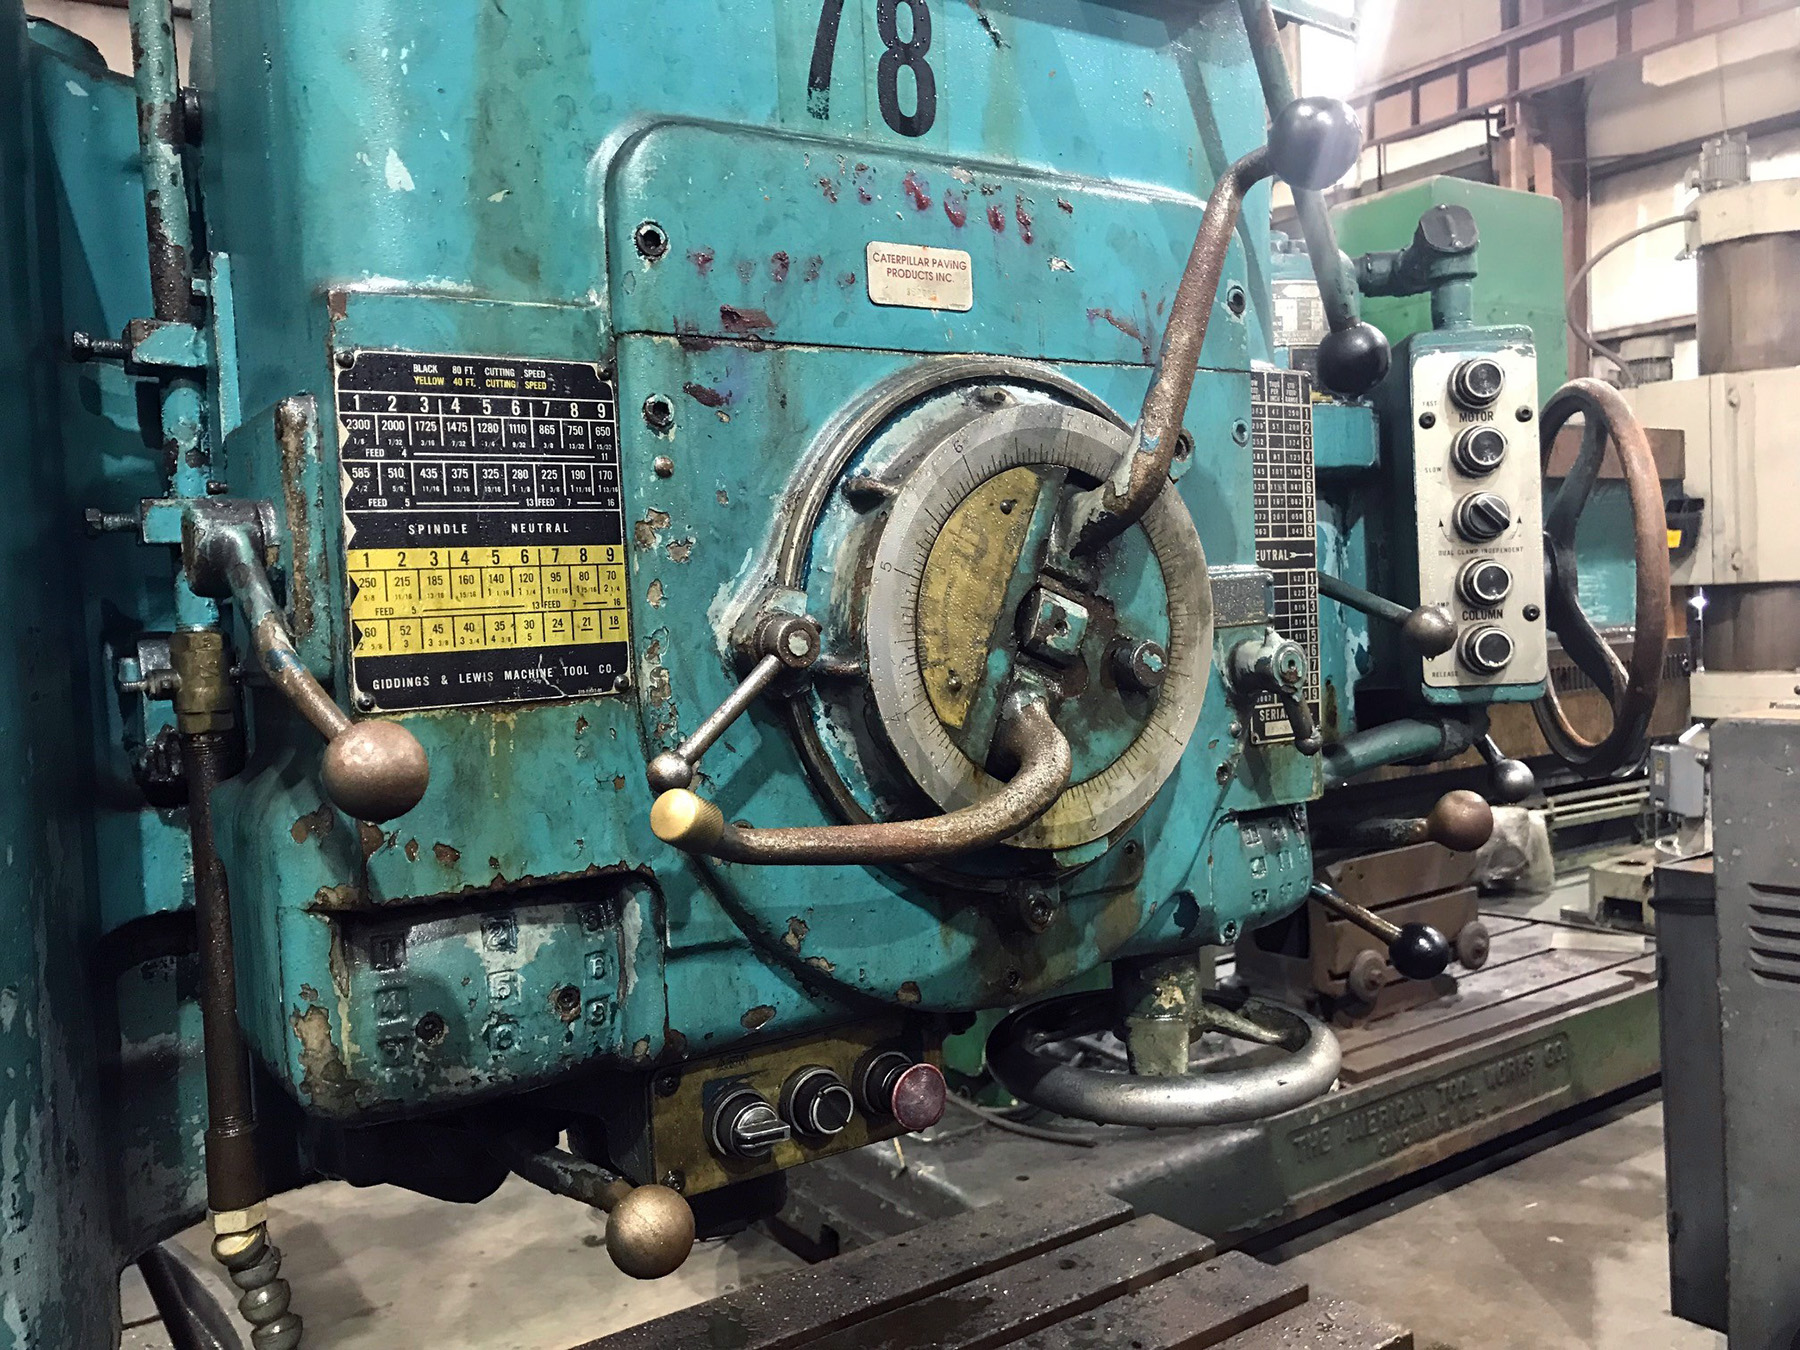 """USED, 4' 13"""" GIDDINGS & LEWIS BICKFORD CHIPMASTER RADIAL ARM DRILL"""